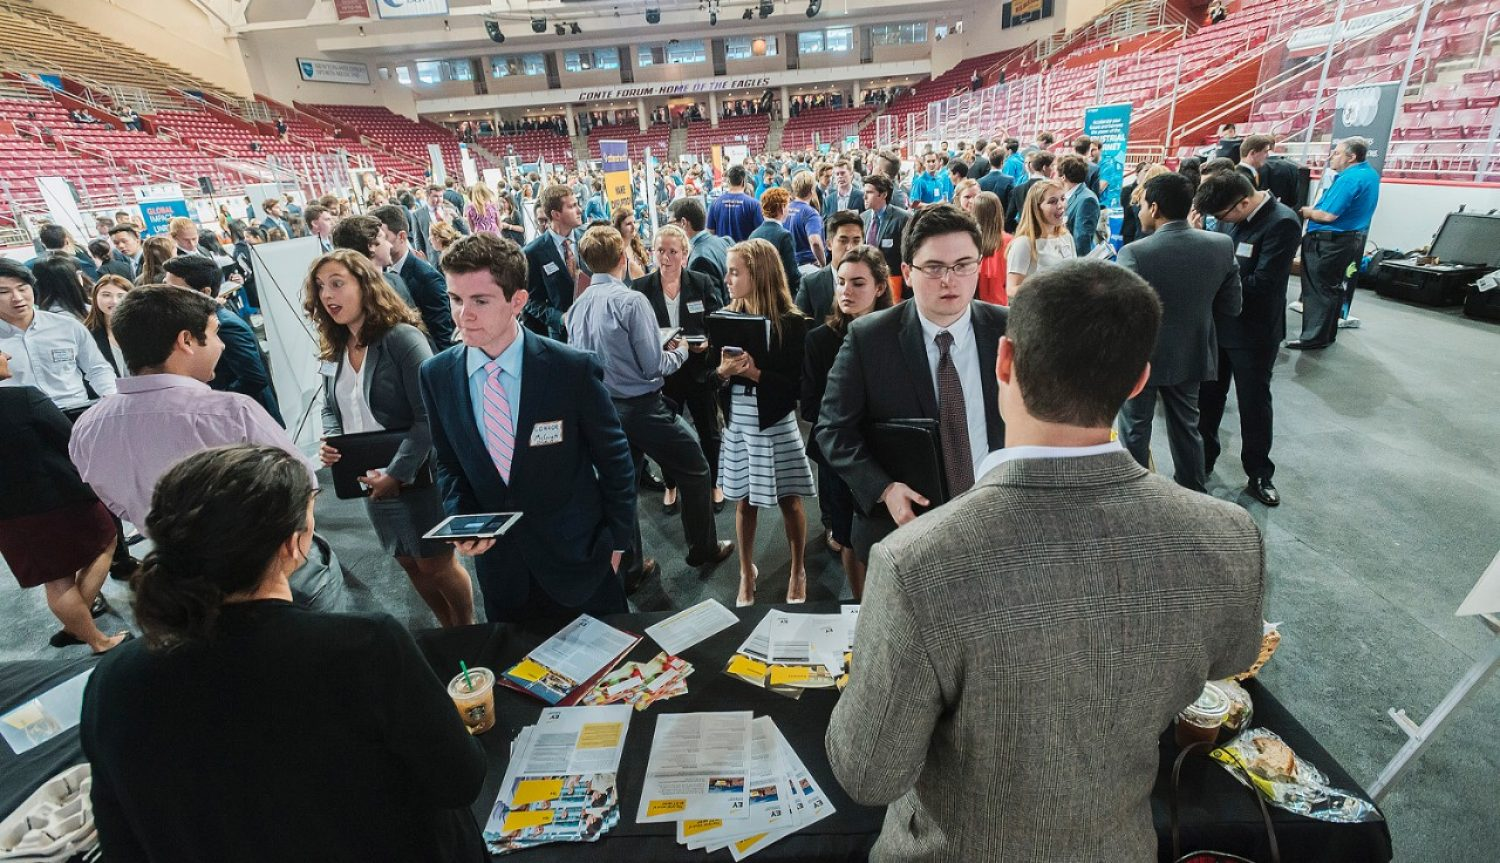 AA record-breaking number of students attended the Boston College 2016 Fall Career and Intership Fair in Conte Forum.